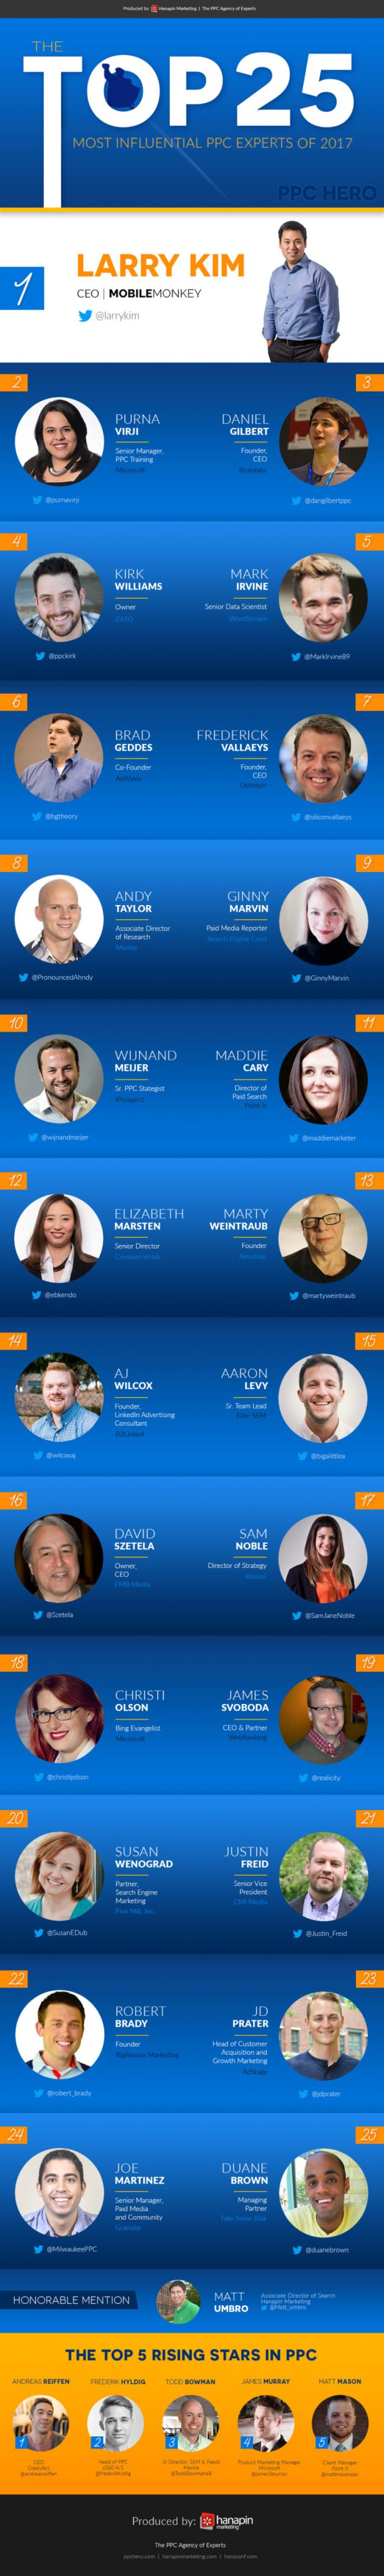 2017 Top 25 Most Influential PPC Experts